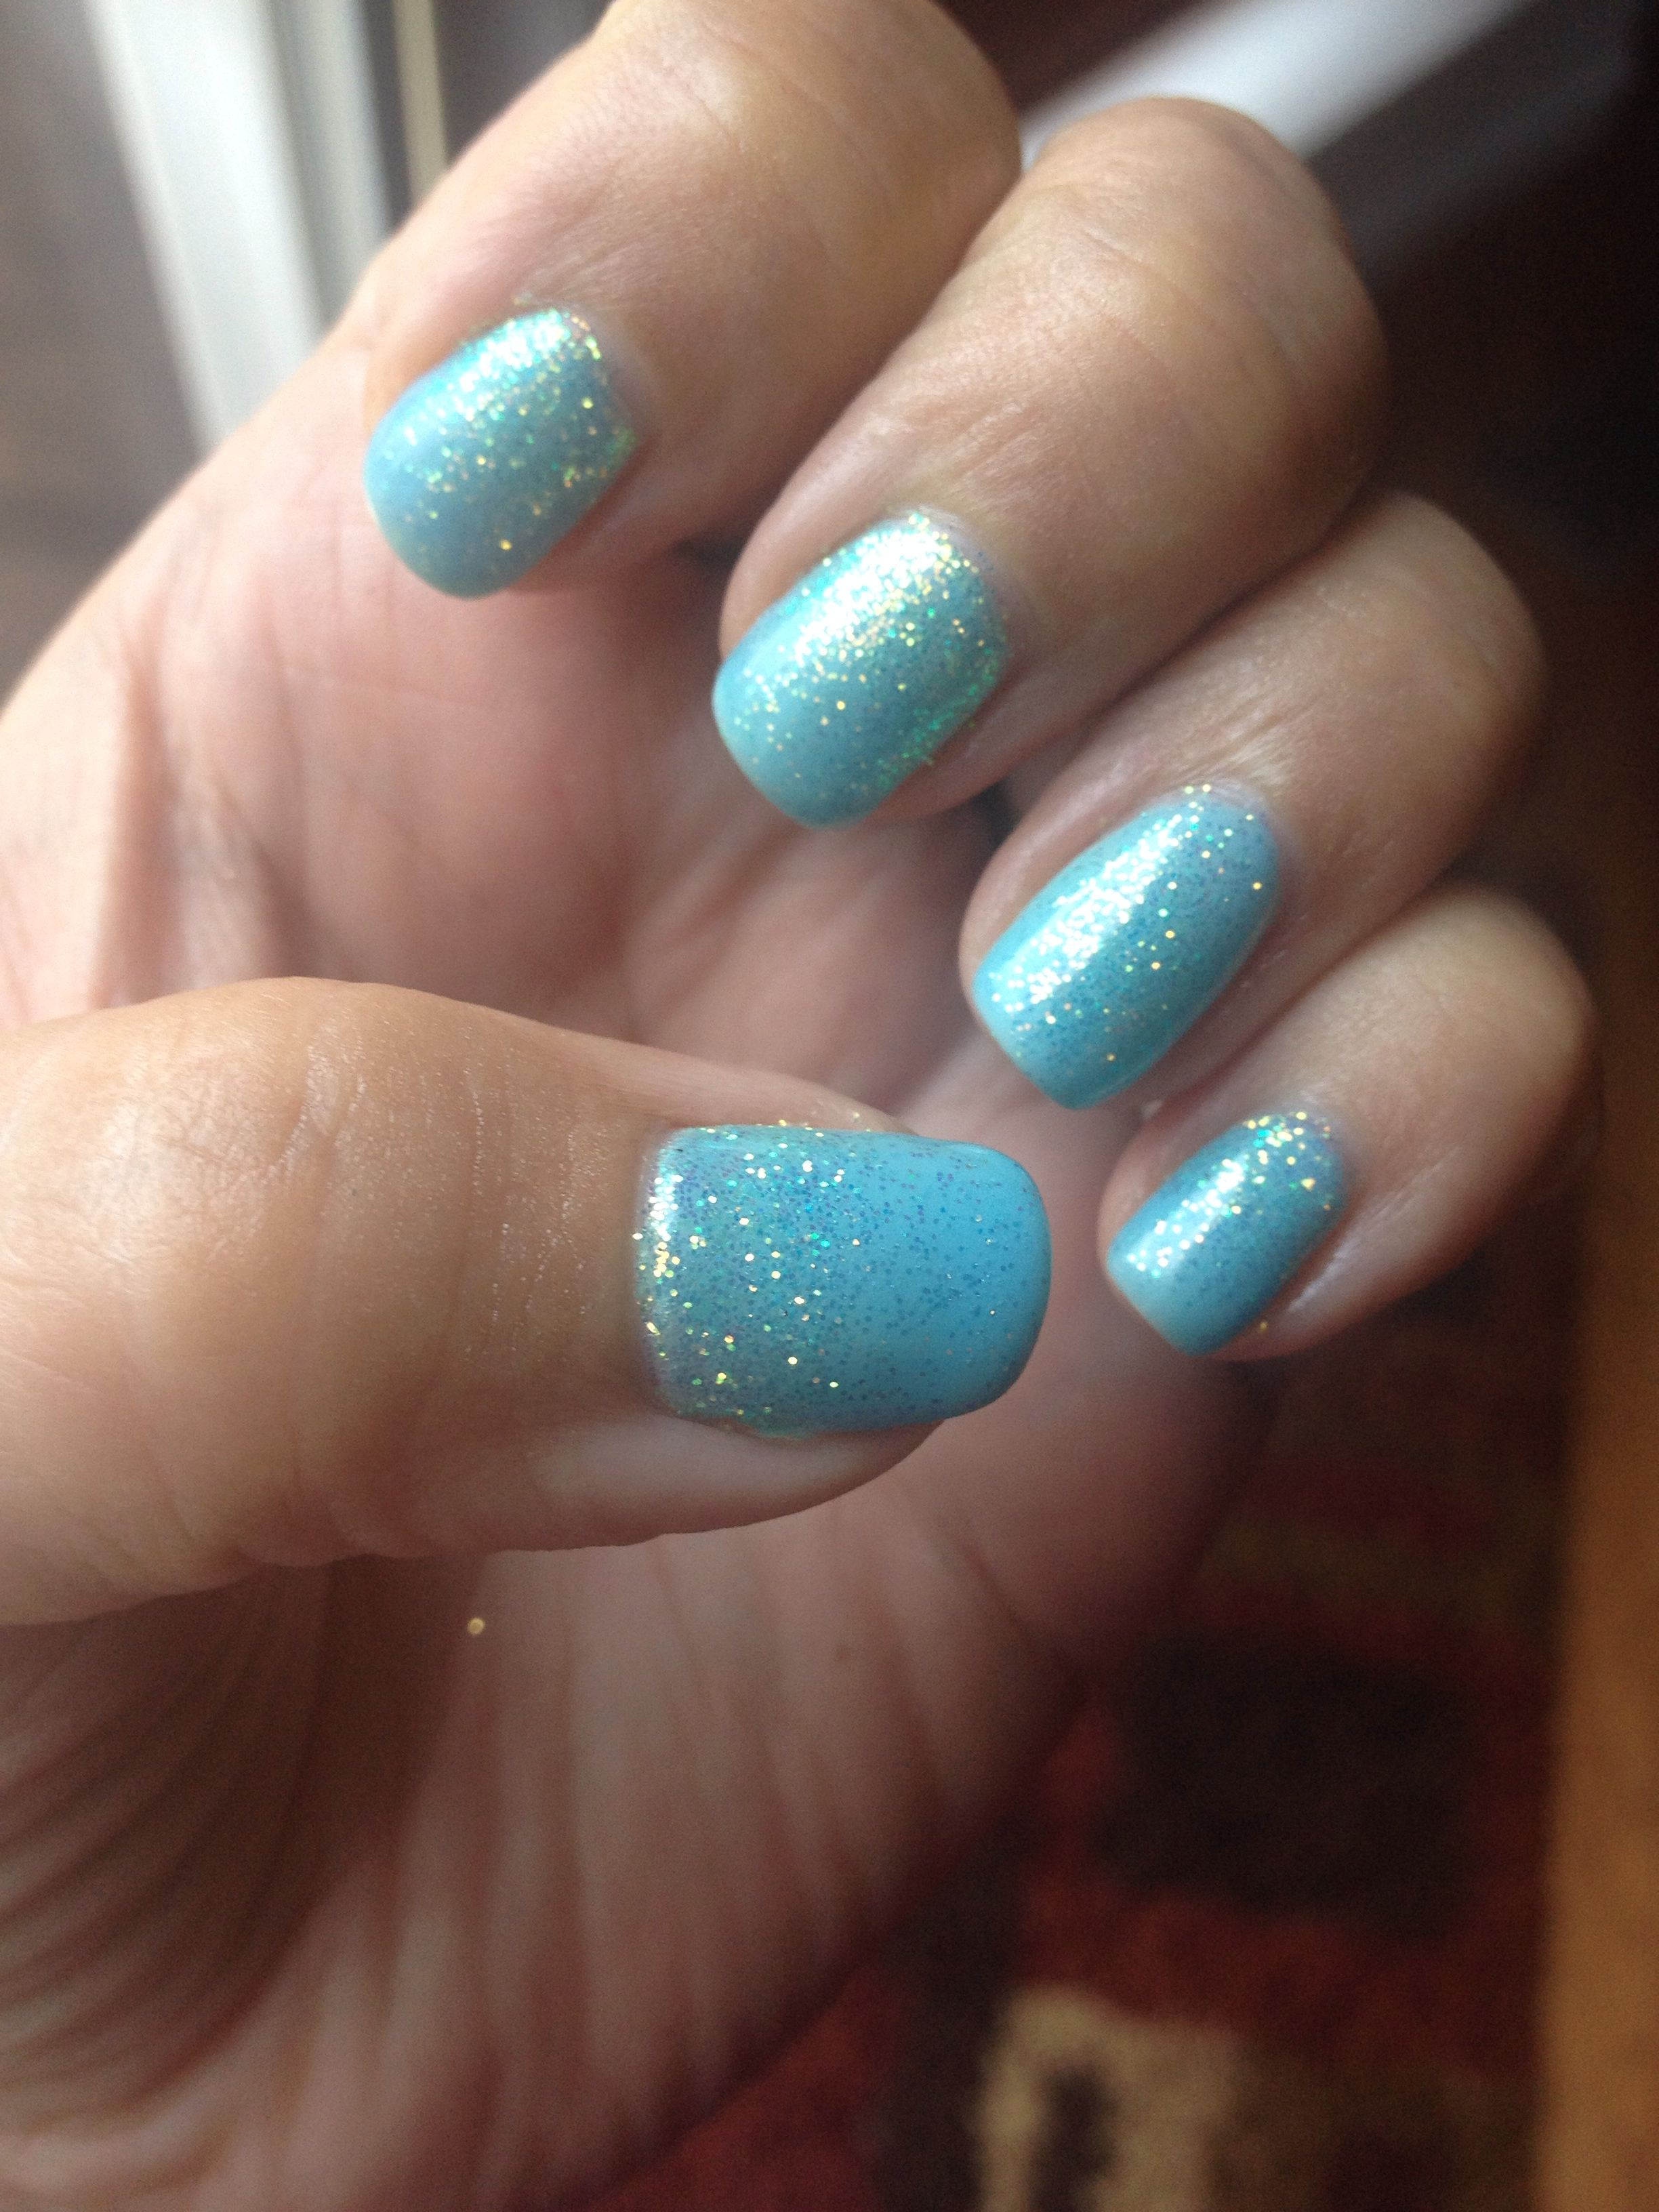 Cnd shellac tiffany blue made layering mint base azure for A david anthony salon